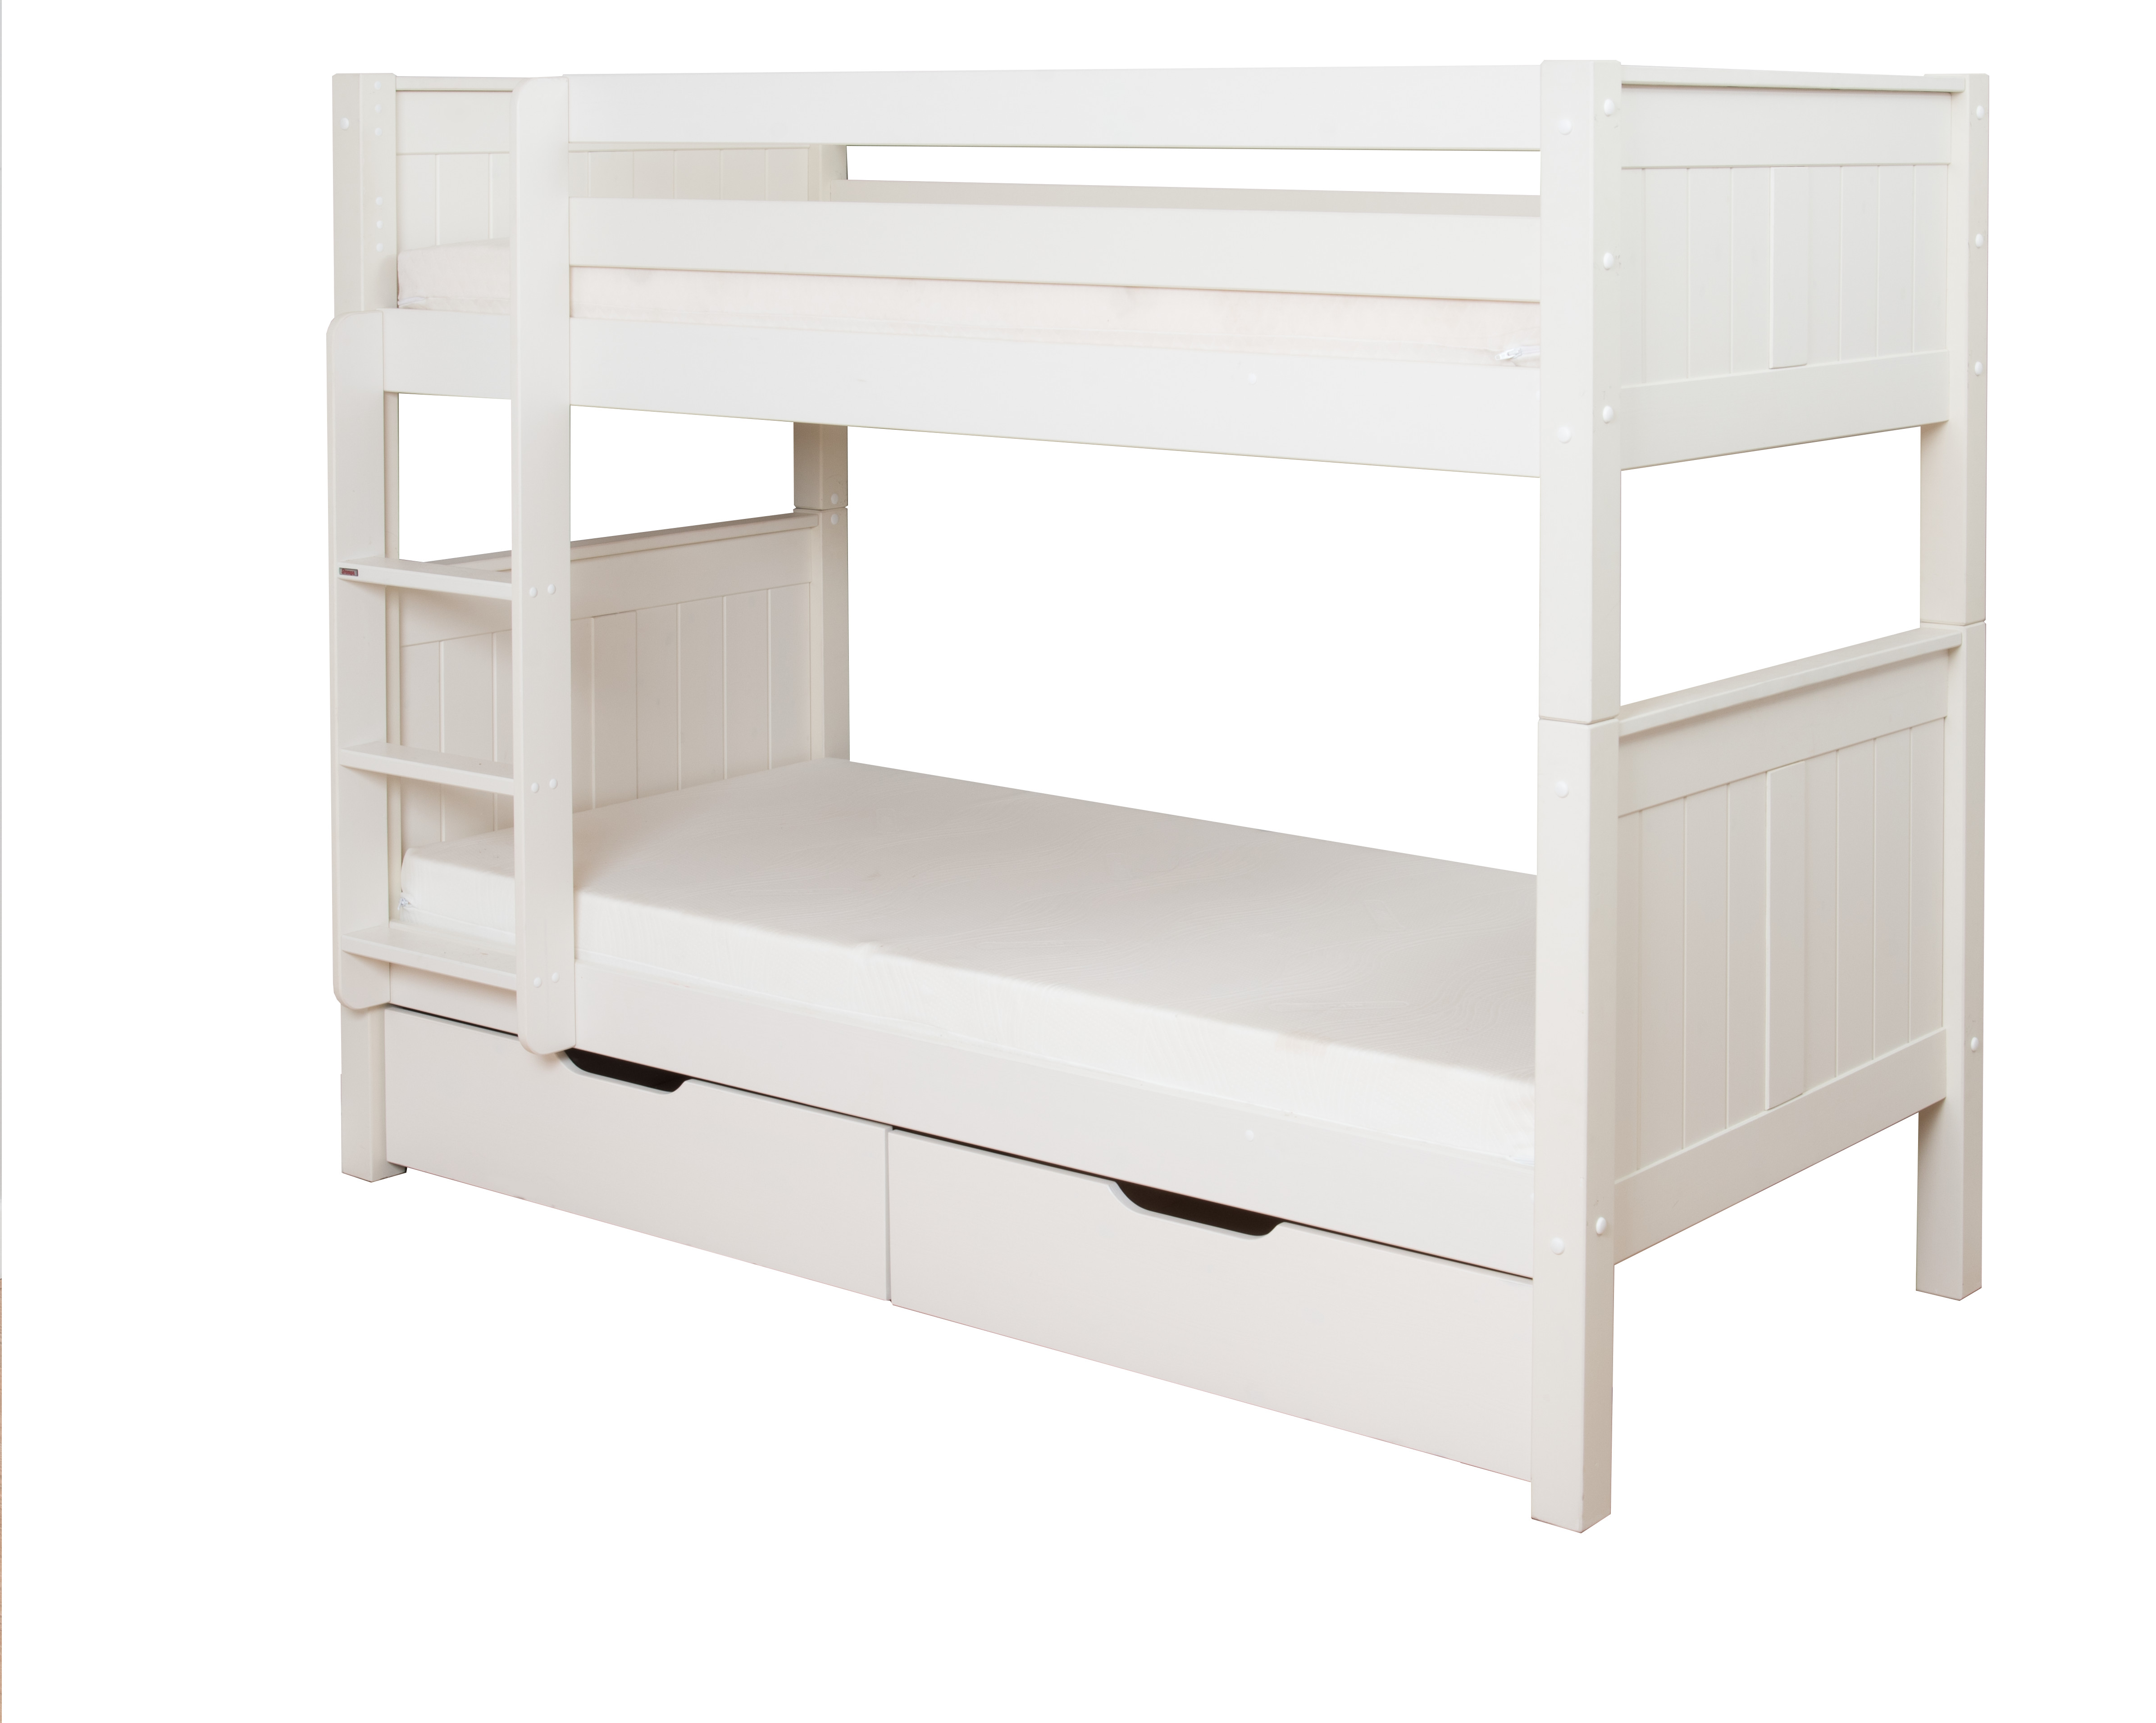 Classic bunk bed with underbed drawers by stompa - Bedroom sets with drawers under bed ...